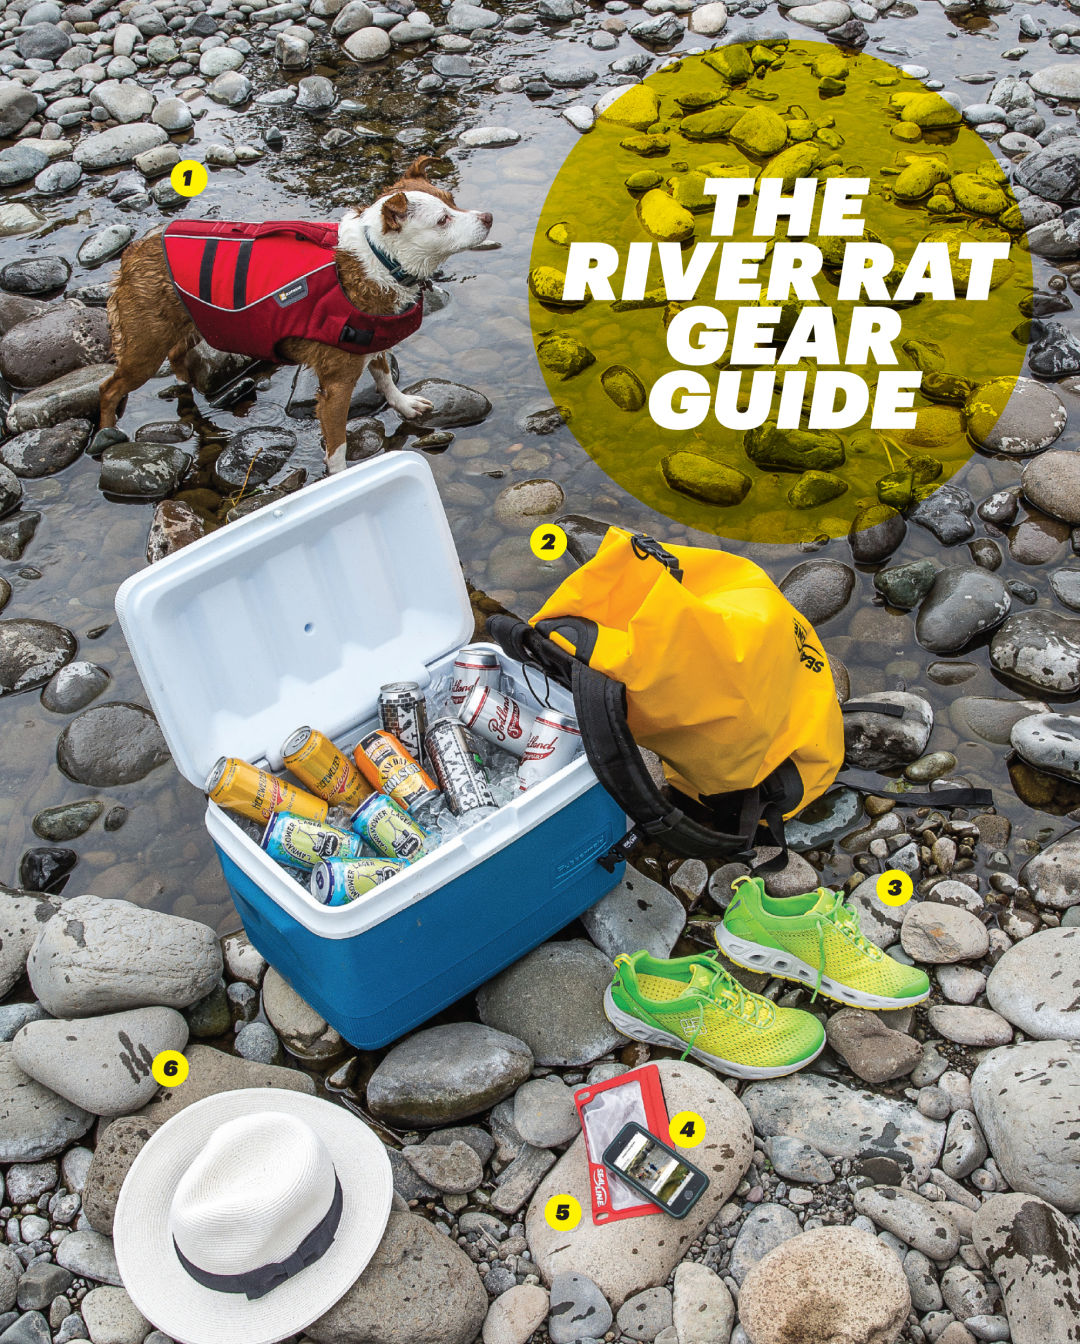 Pomo 0816 swimming holes gear guide 2 t5kfcq